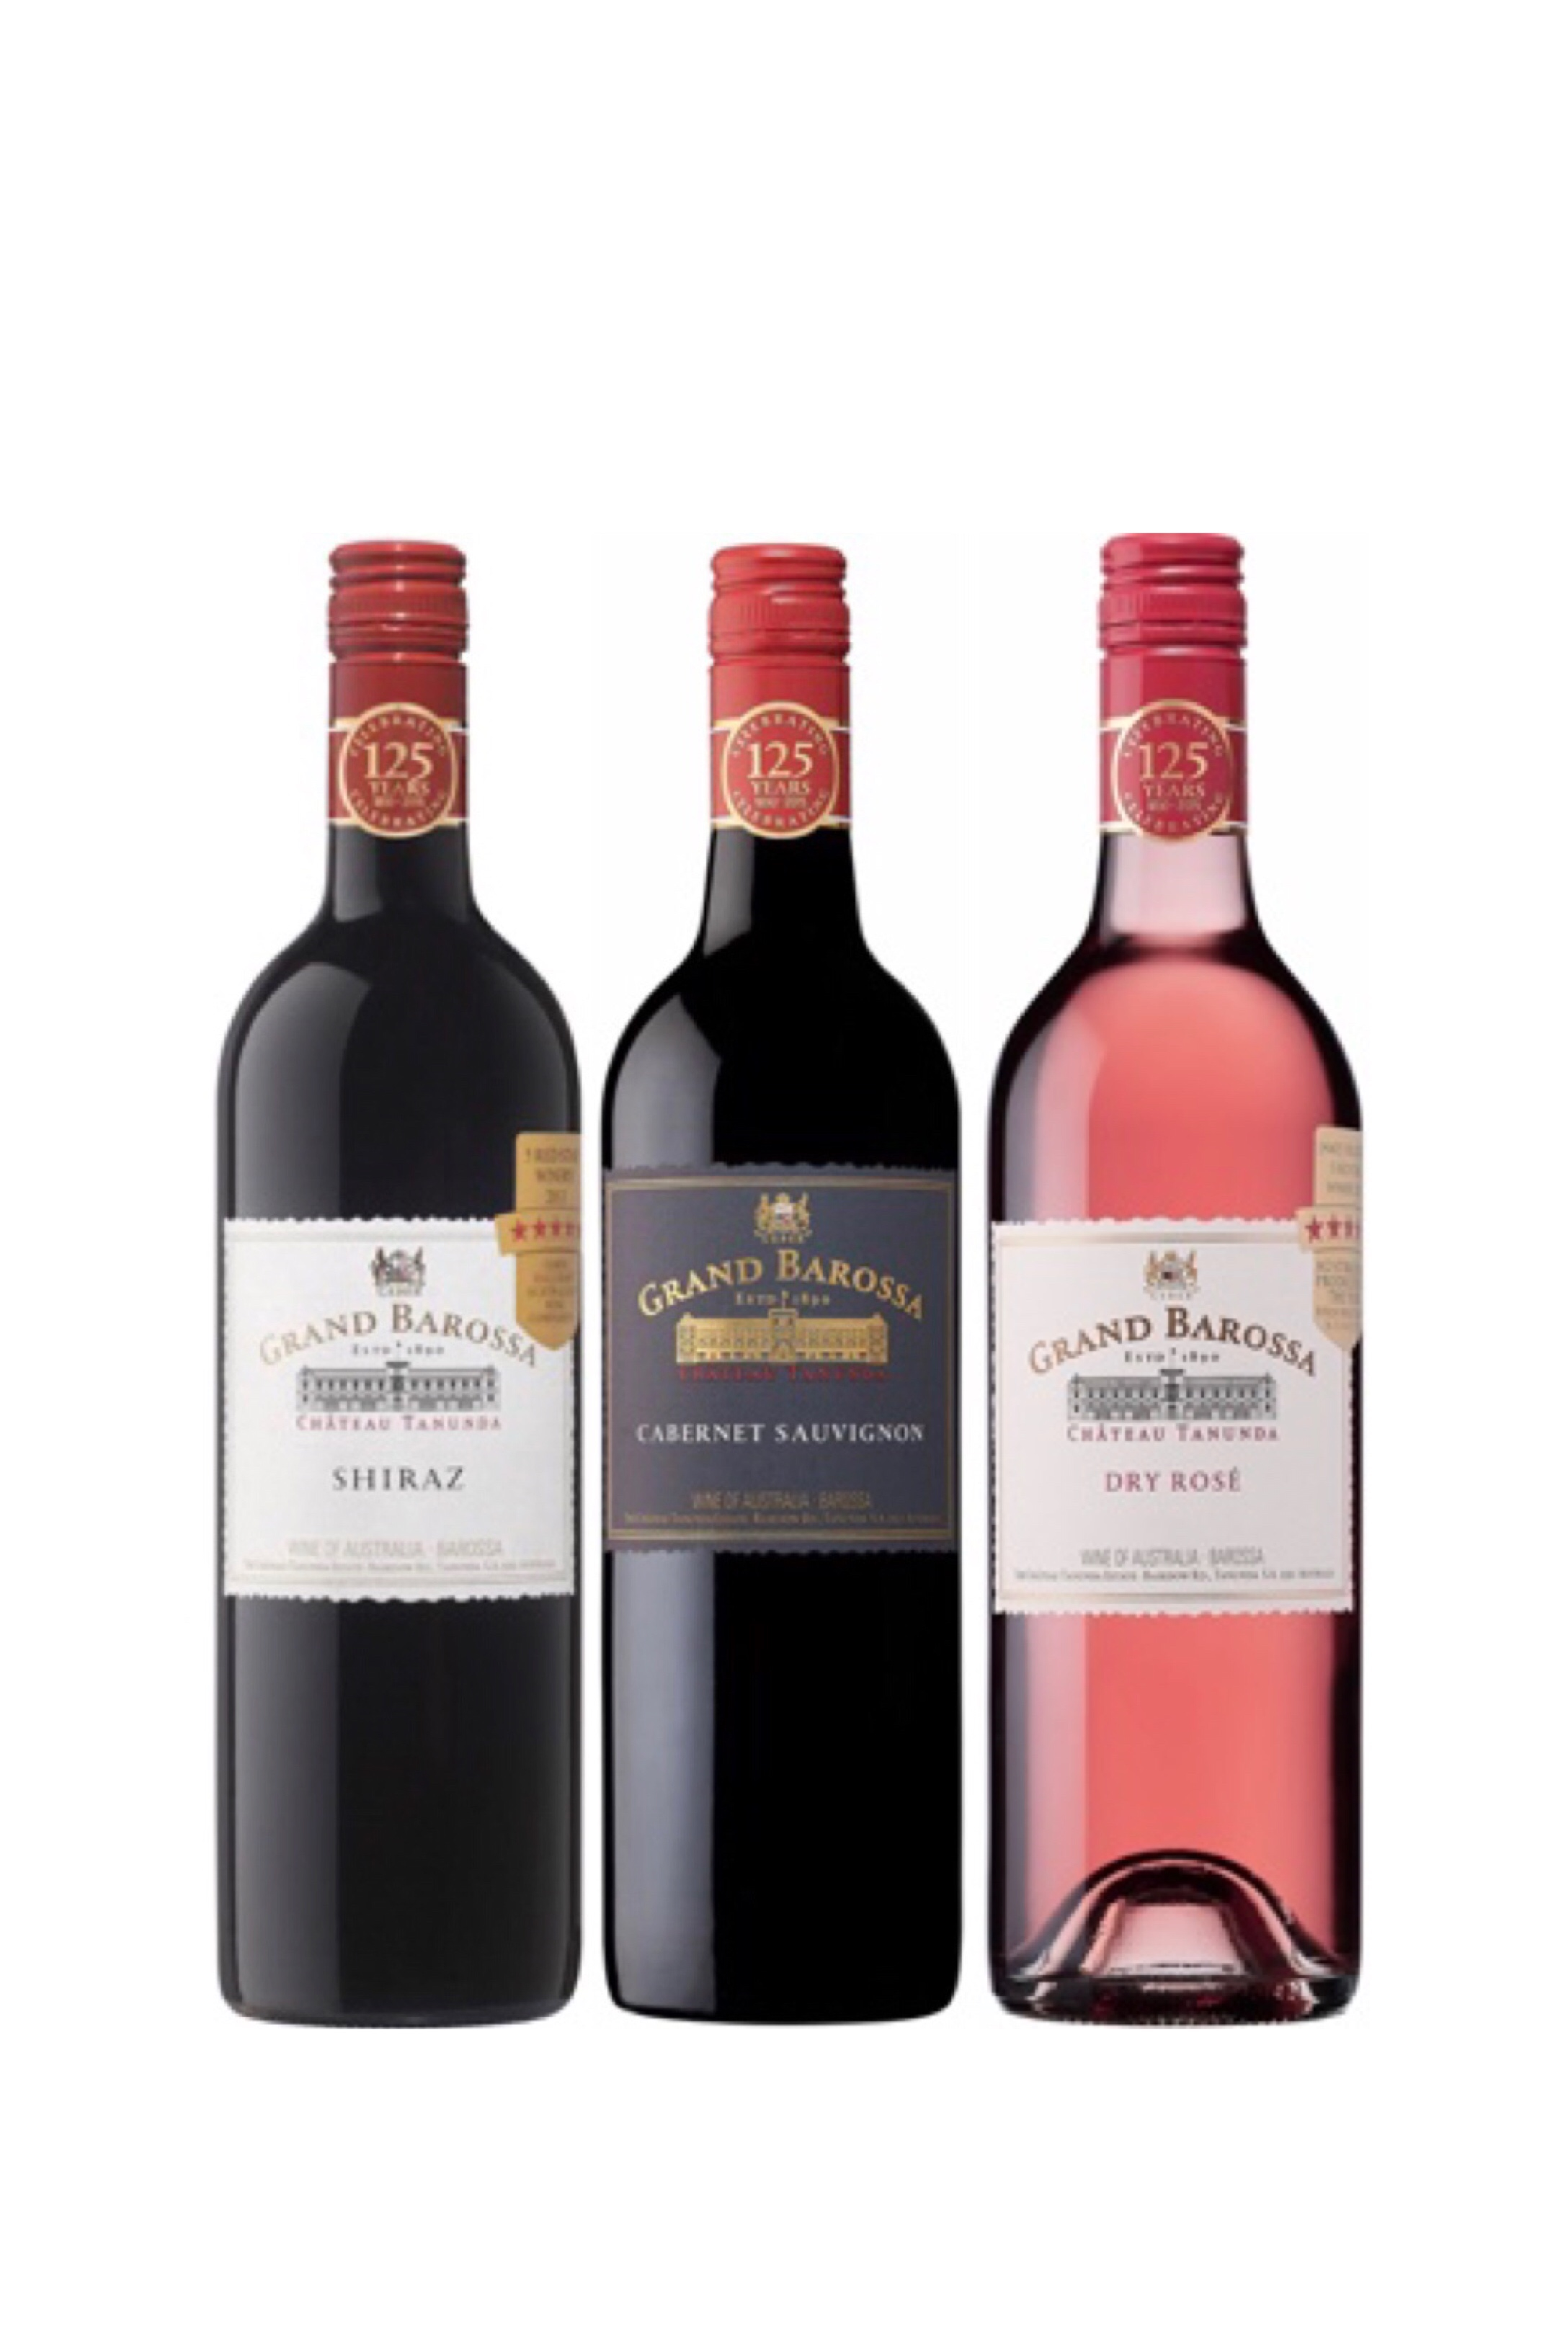 Award Winning Grand Barossa Shiraz And Cabernet Sauvignon Bundle Plus One FREE Bottle Of Wine Worth $48